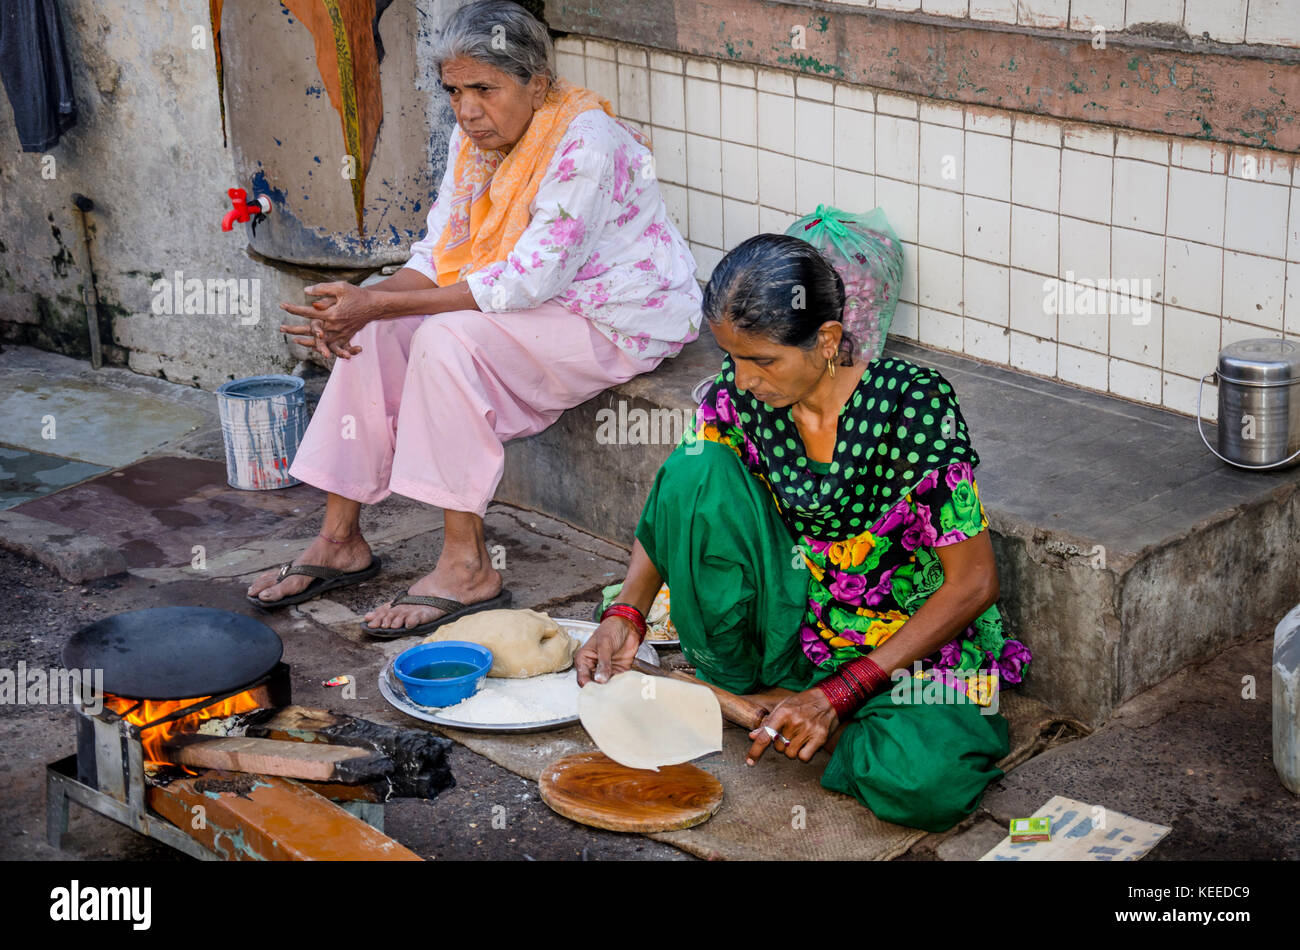 AHMEDABAD, INDIA - NOVEMBER 27, 2016: Muslim women cooking chapatti and food for family on the side of the street - Stock Image